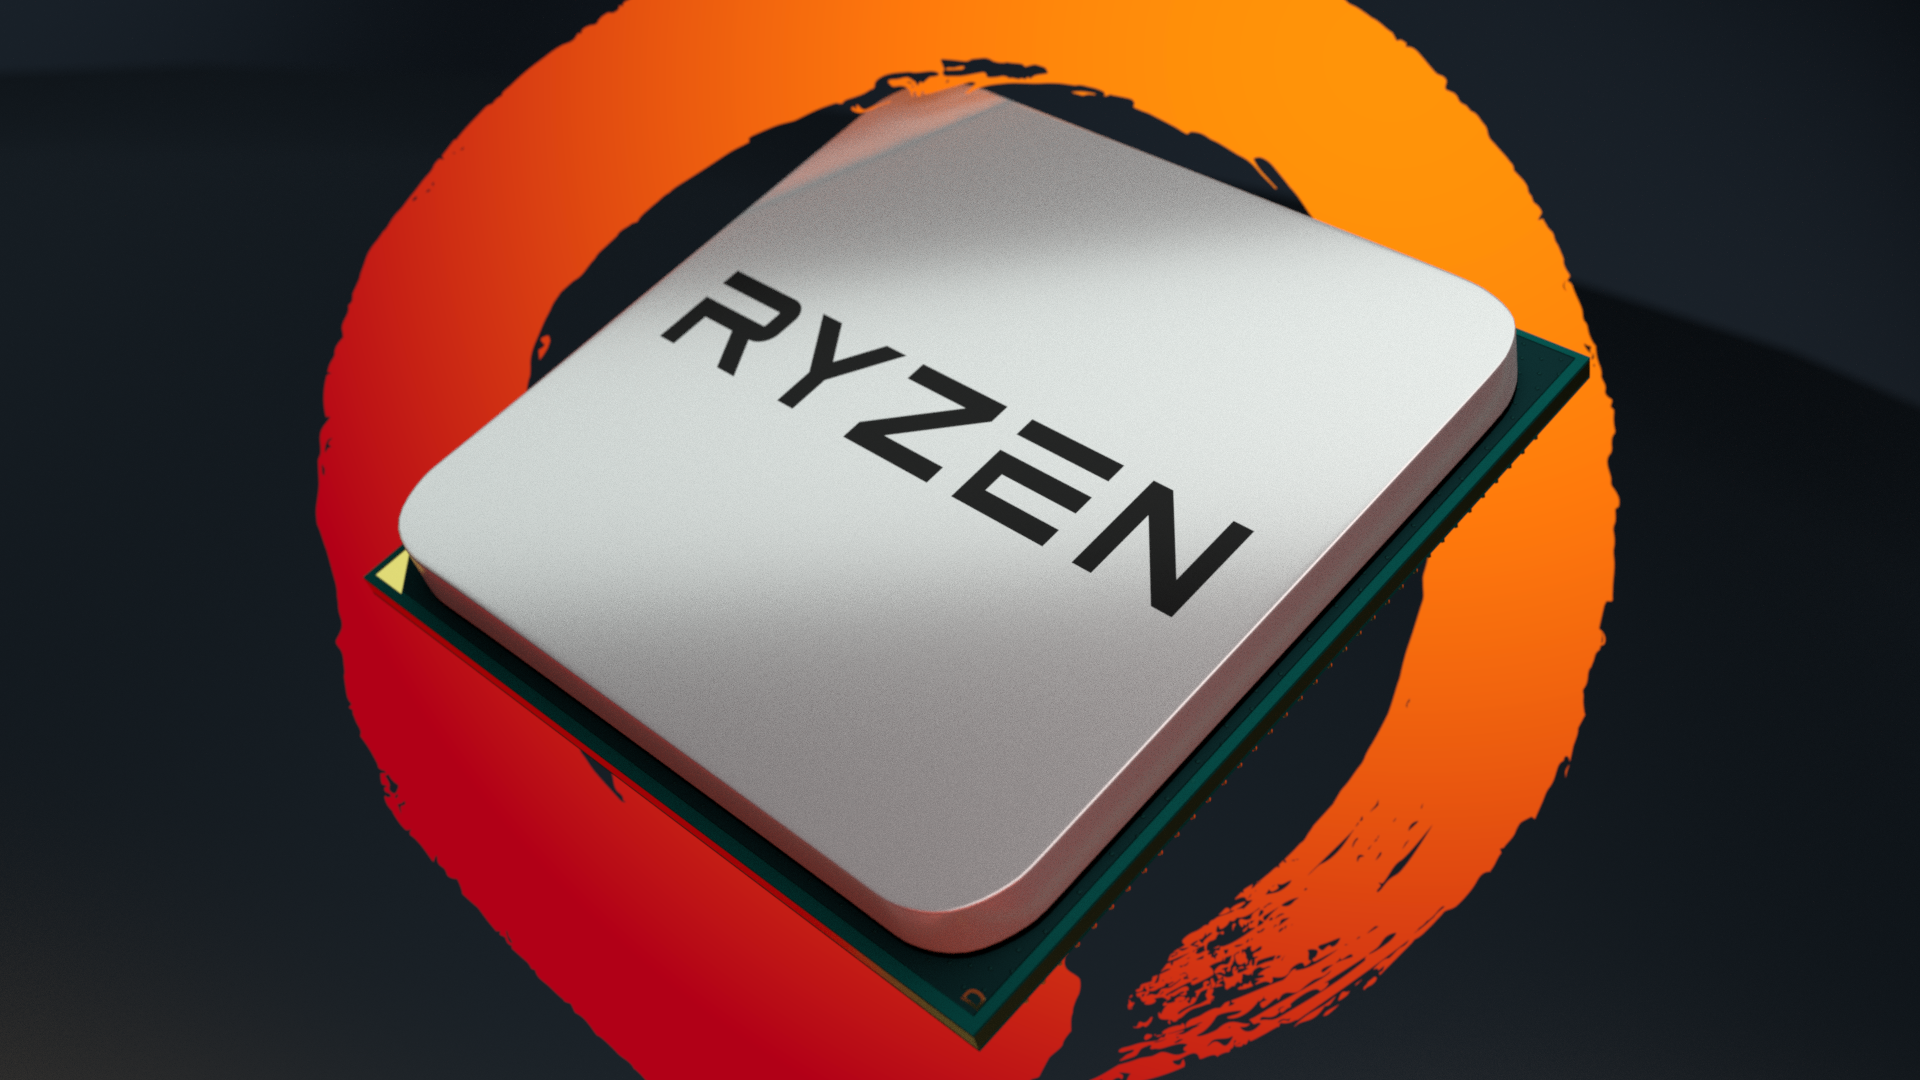 Amd Ryzen Drivers